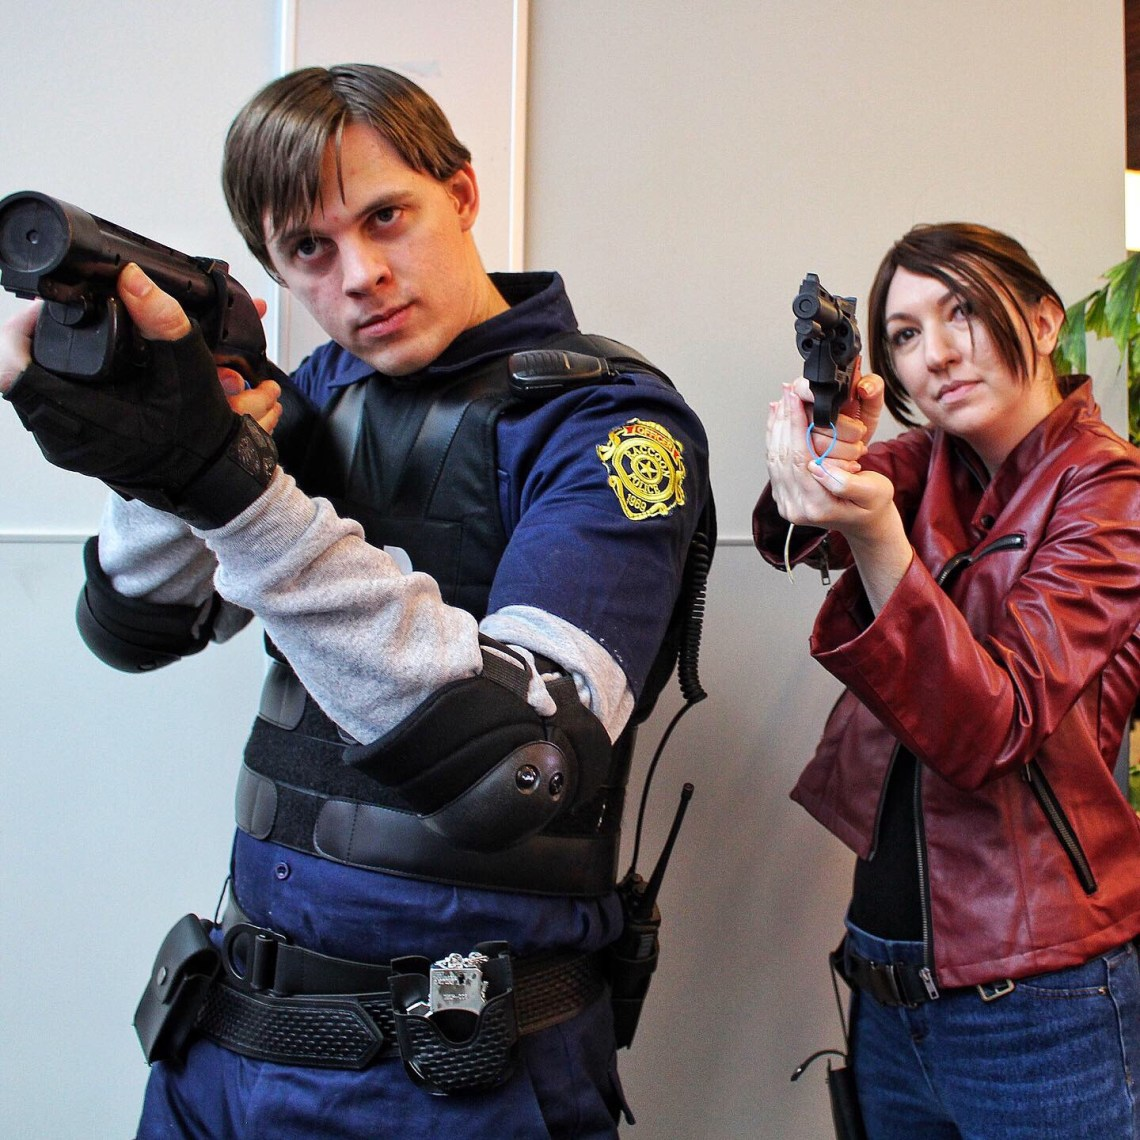 Resident Evil 2 Leon S. Kennedy Claire Redfield cosplayers 8Bit/Digi